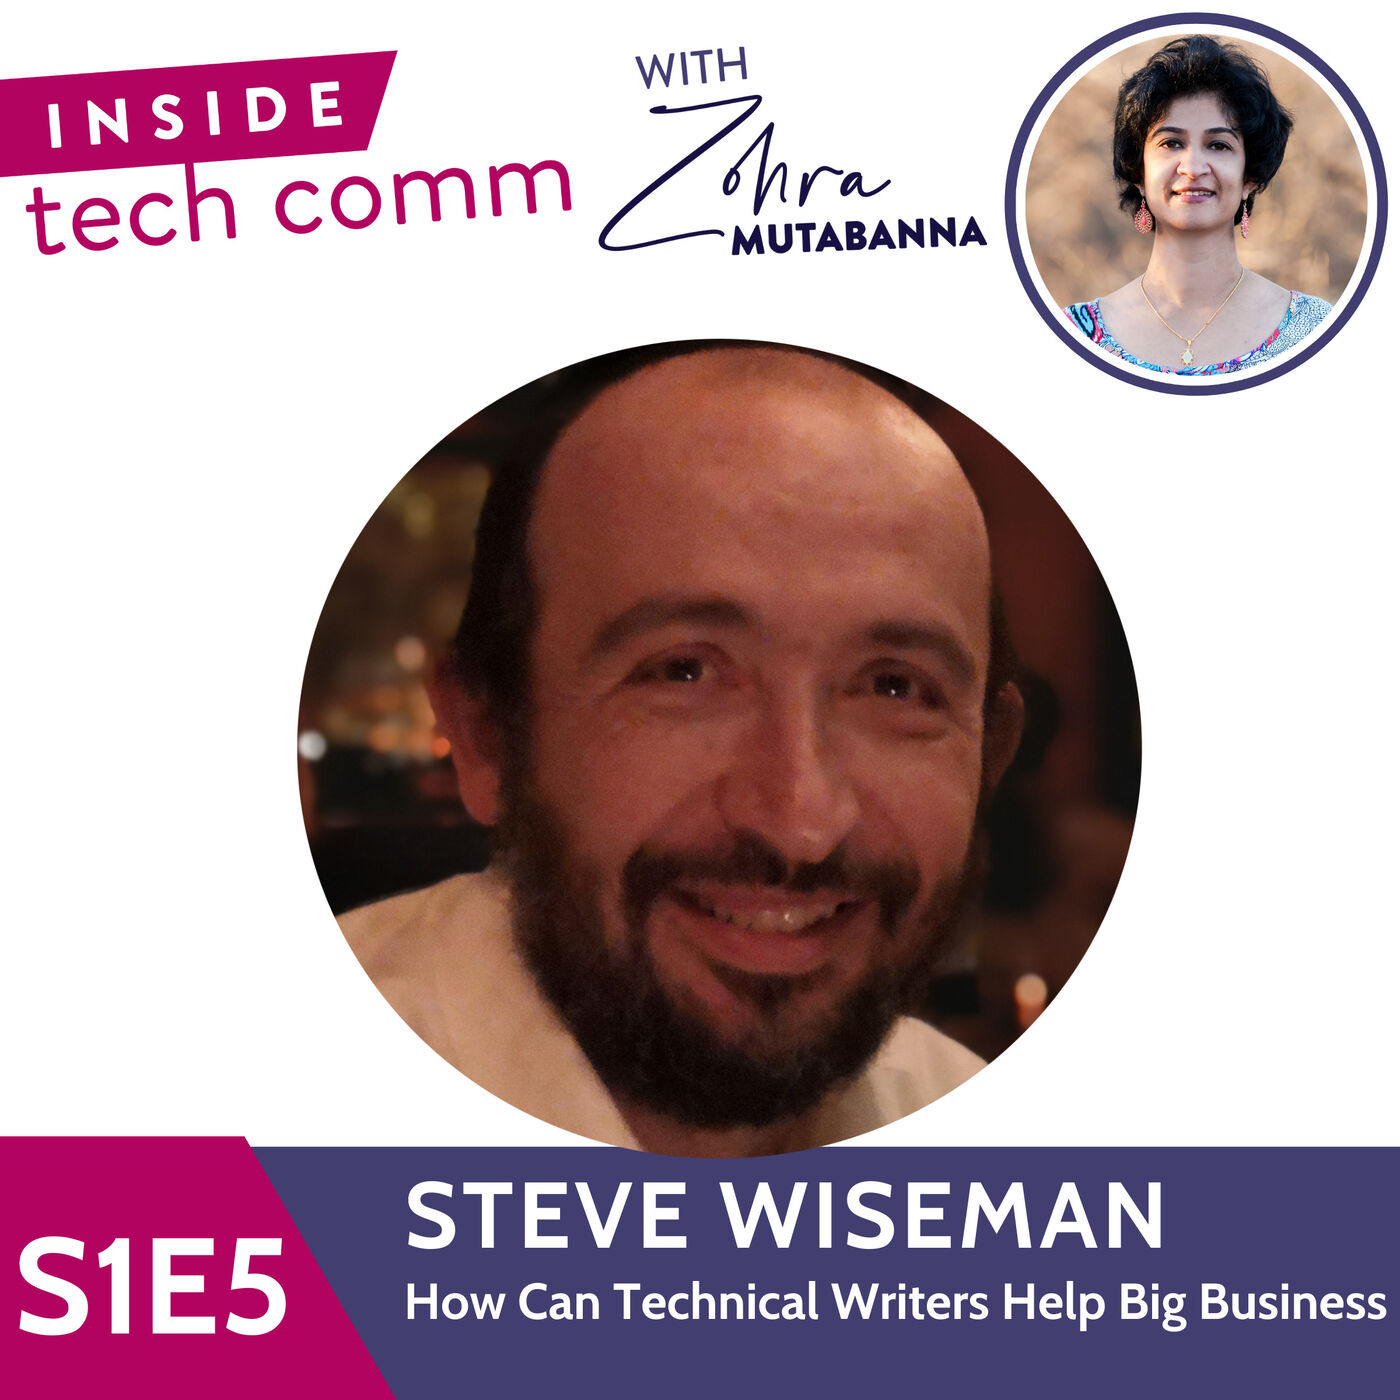 S1E5 How can technical writers help big business with Steve Wiseman